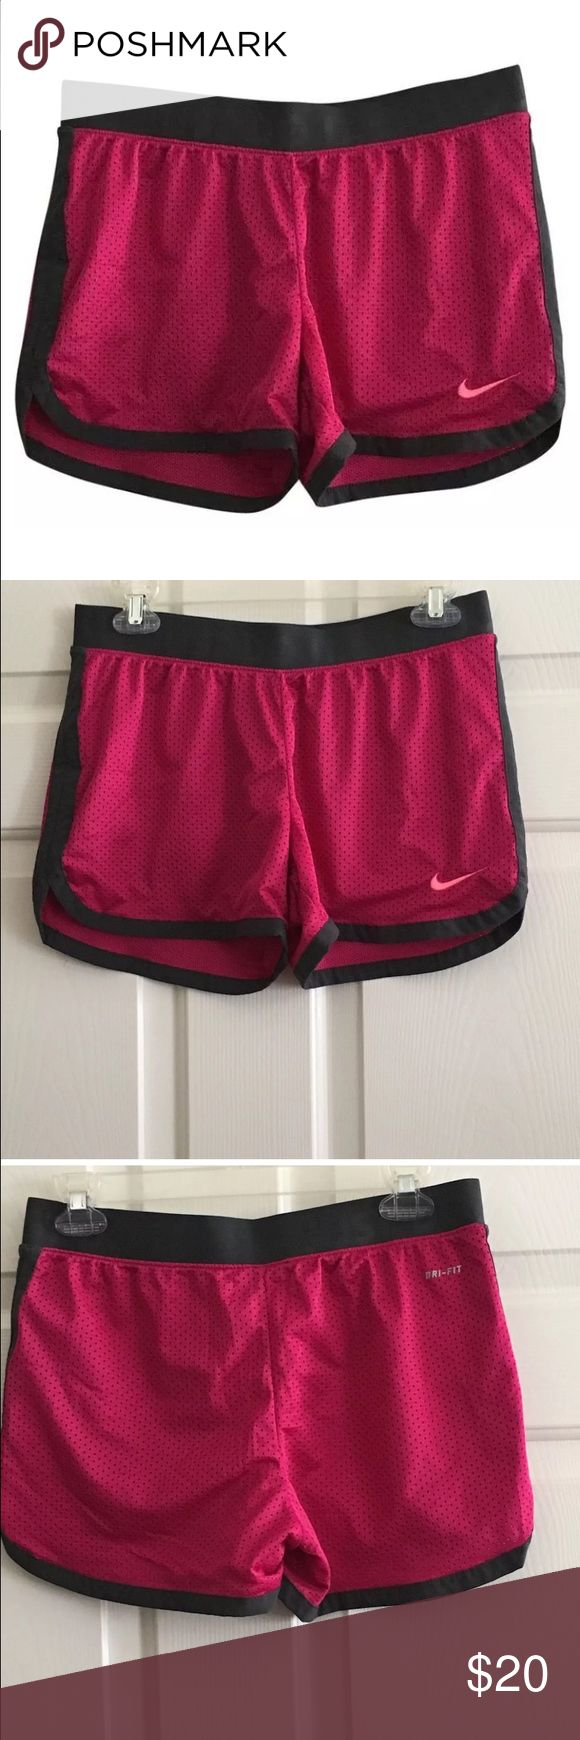 Nike Dri Fit Running Exercise Workout Shorts Berry Pink Nike Dri Fit Running Jogging Exercise Workout Shorts - Small. Worn once. Nike Shorts